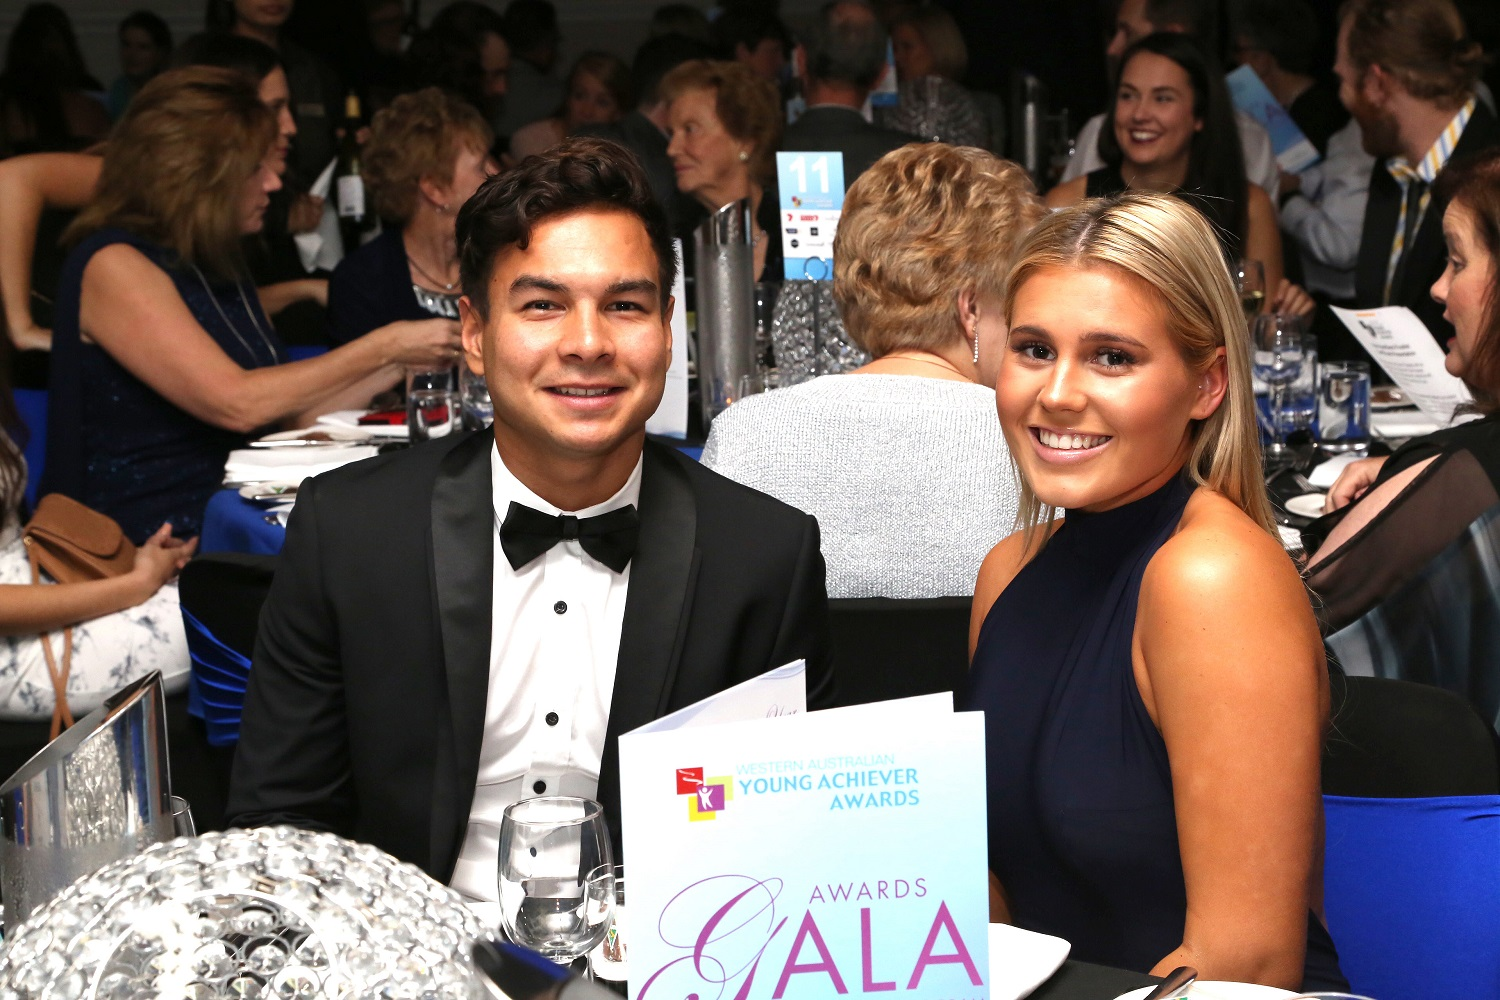 Western Australian Young Achiever Awards